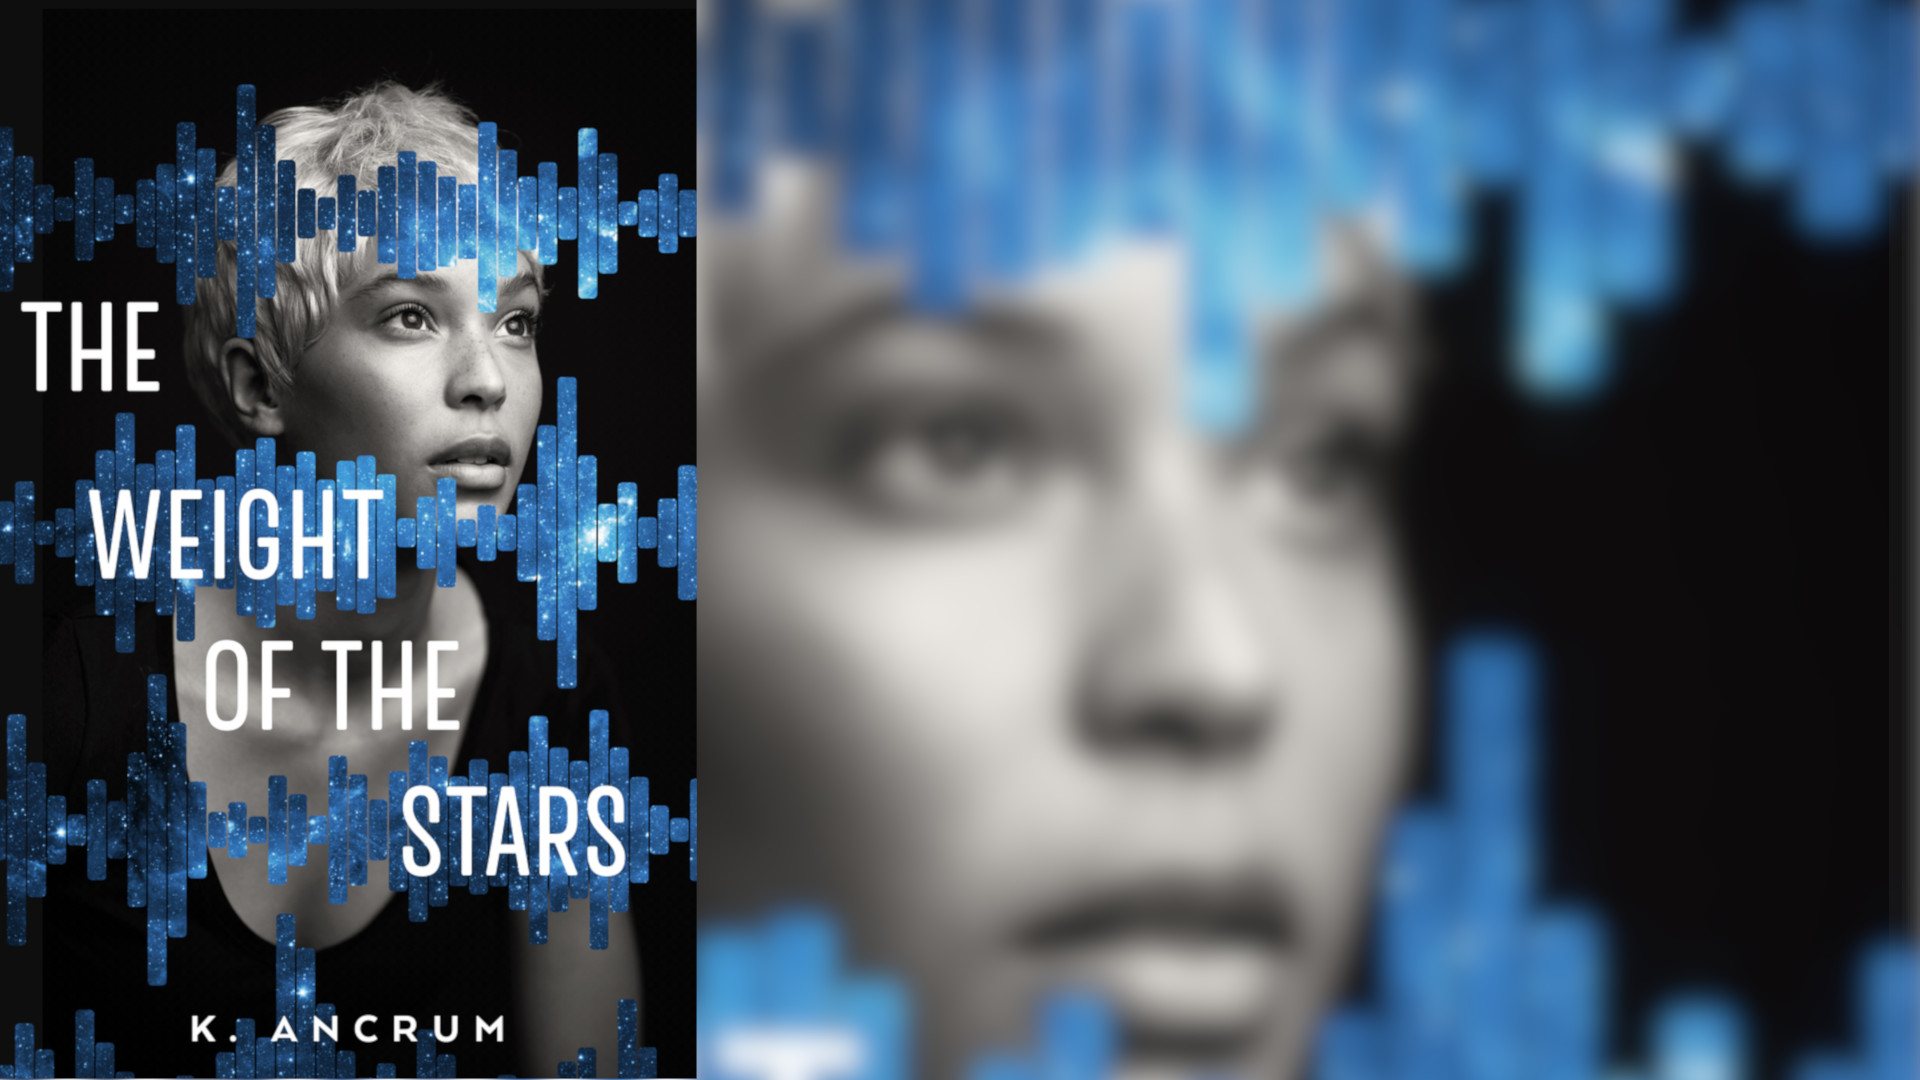 The Weight of the Stars: Queer teen love story elevates YA sci-fi novel